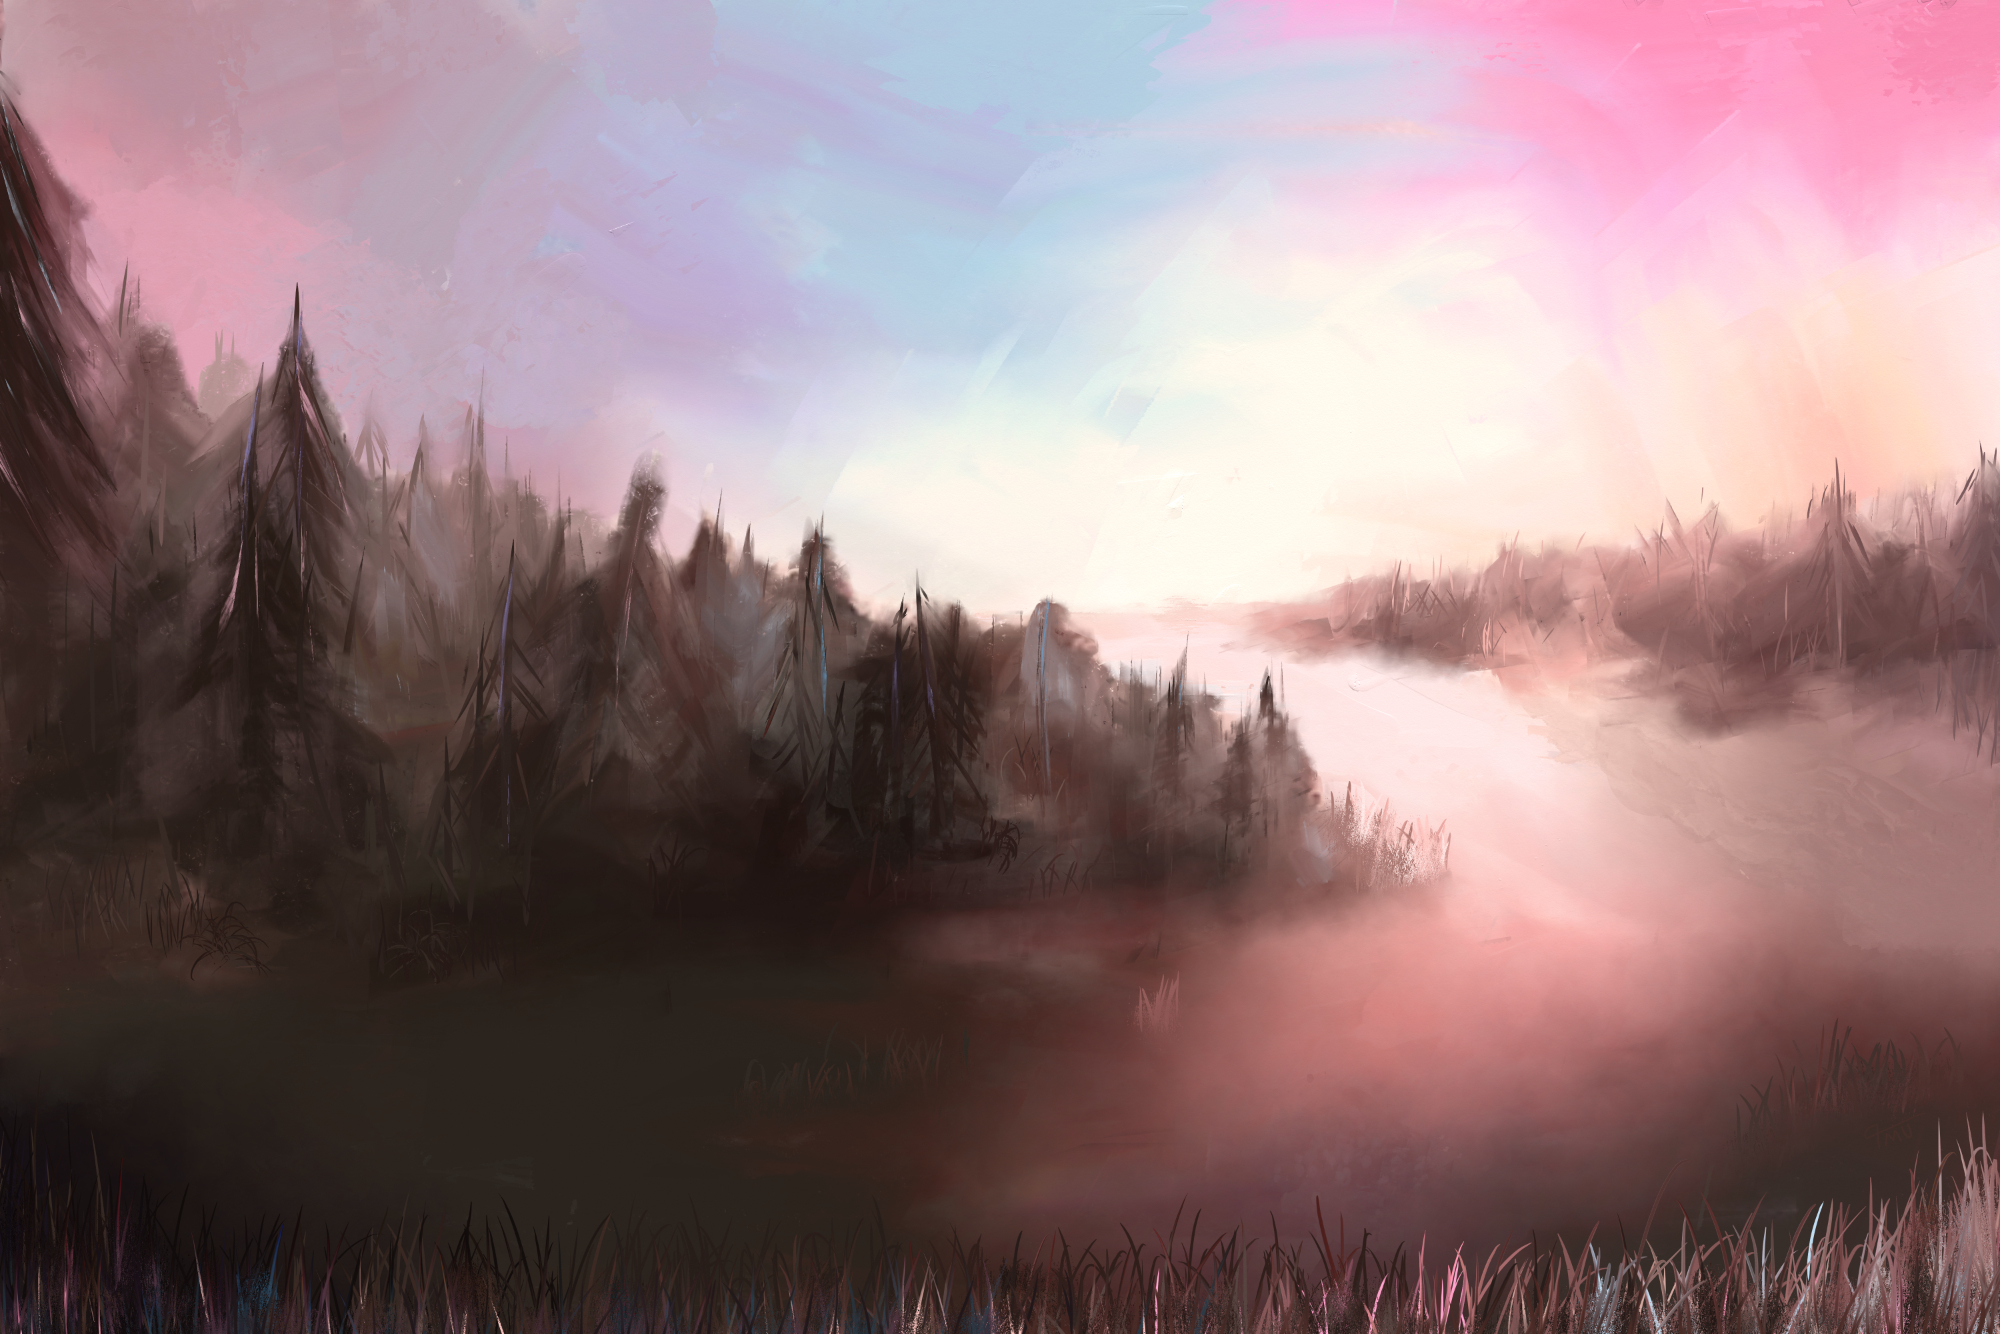 Digital acrylic painting of a landscape on a cool winter morning